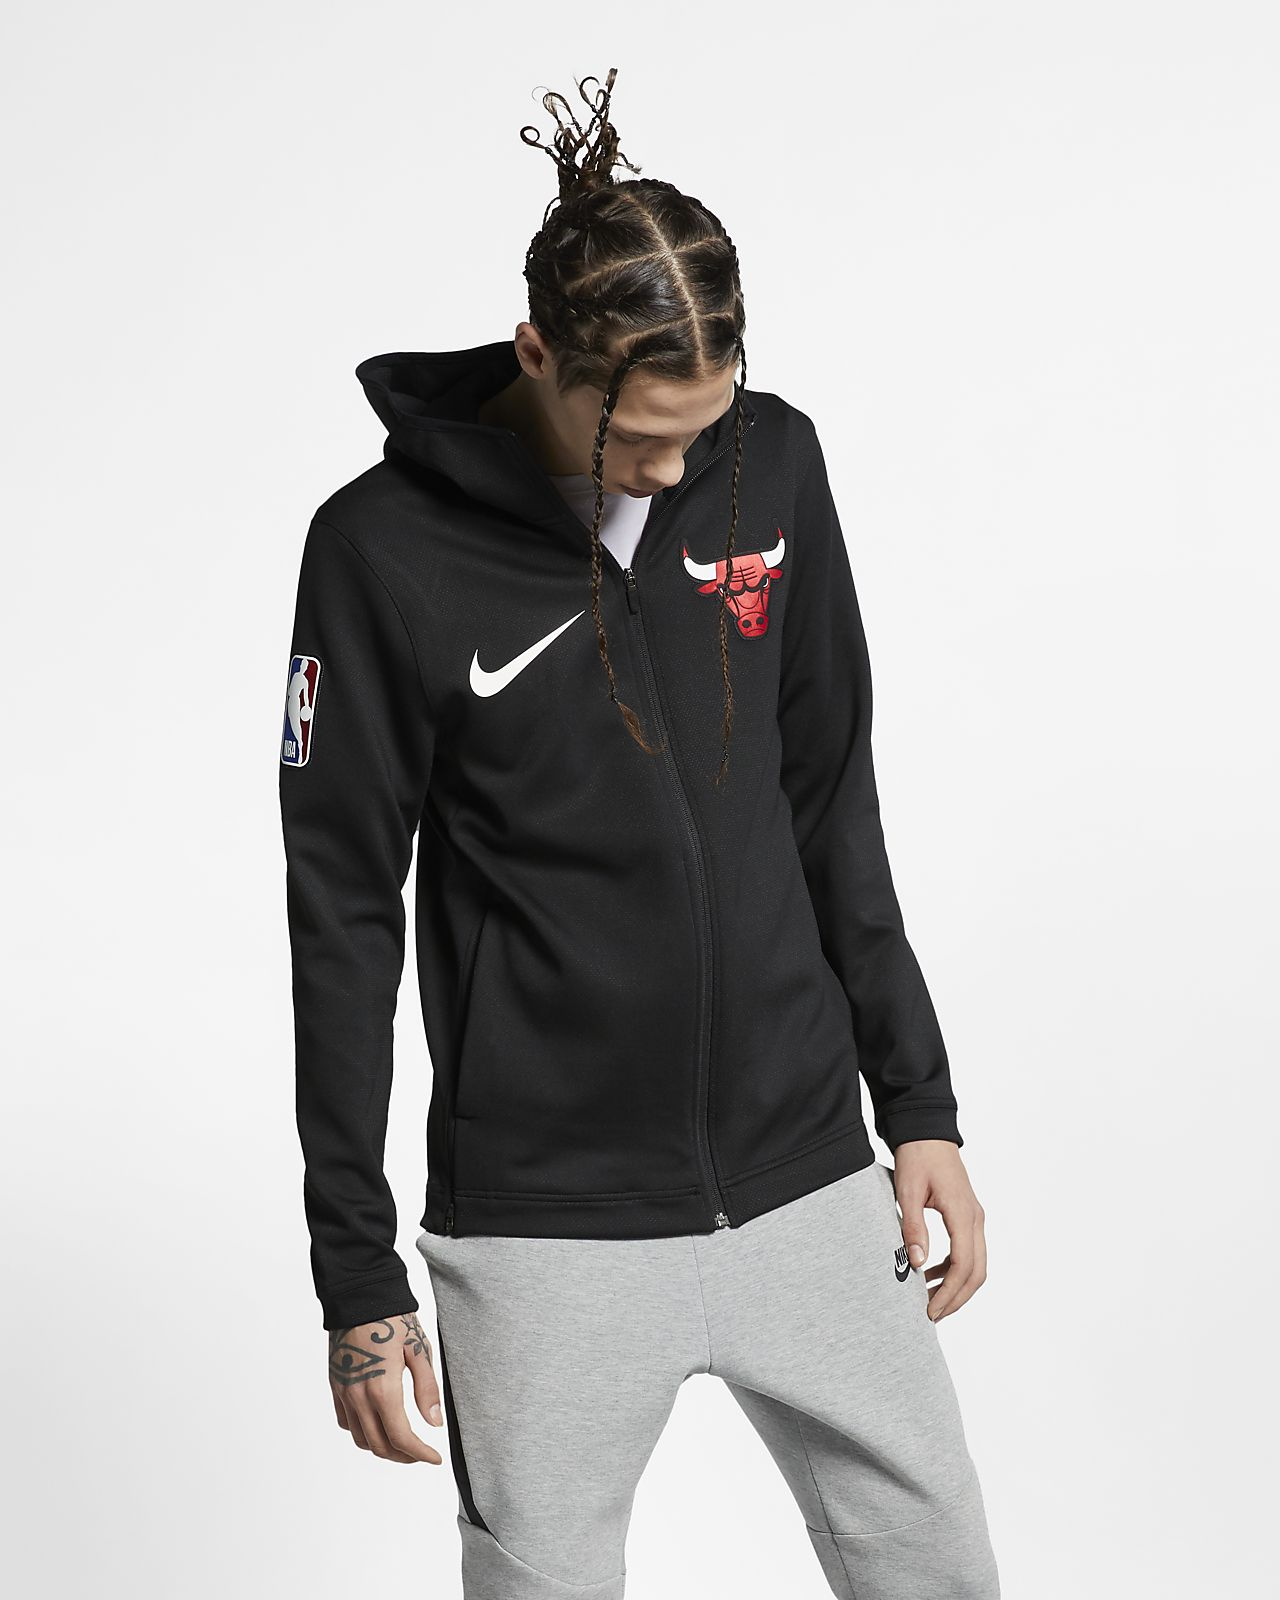 e2061282dda Chicago Bulls Nike Therma Flex Showtime NBA-hoodie voor heren. Nike ...